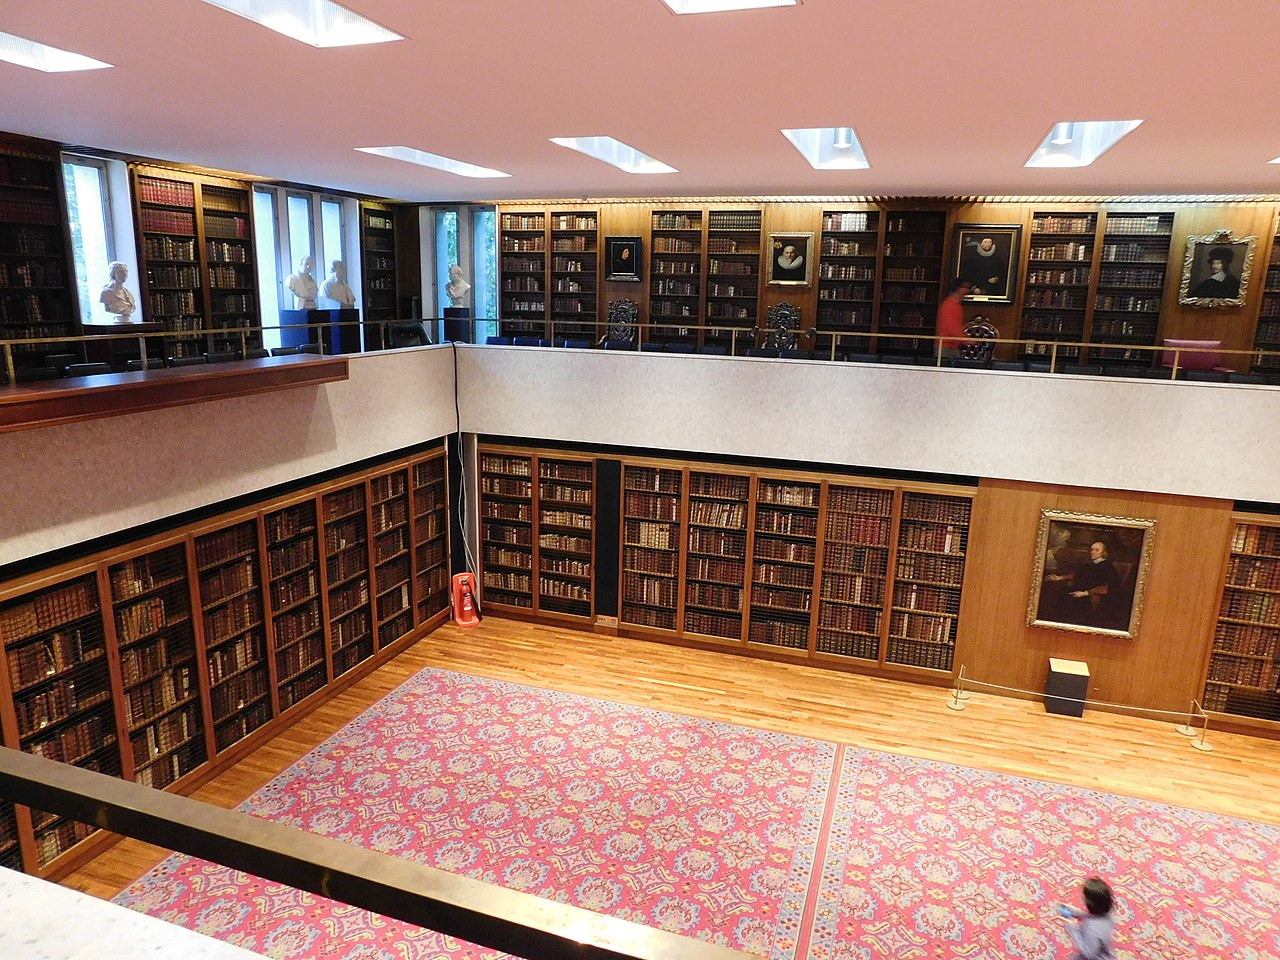 The Dorchester Library at the Royal College of Physicians